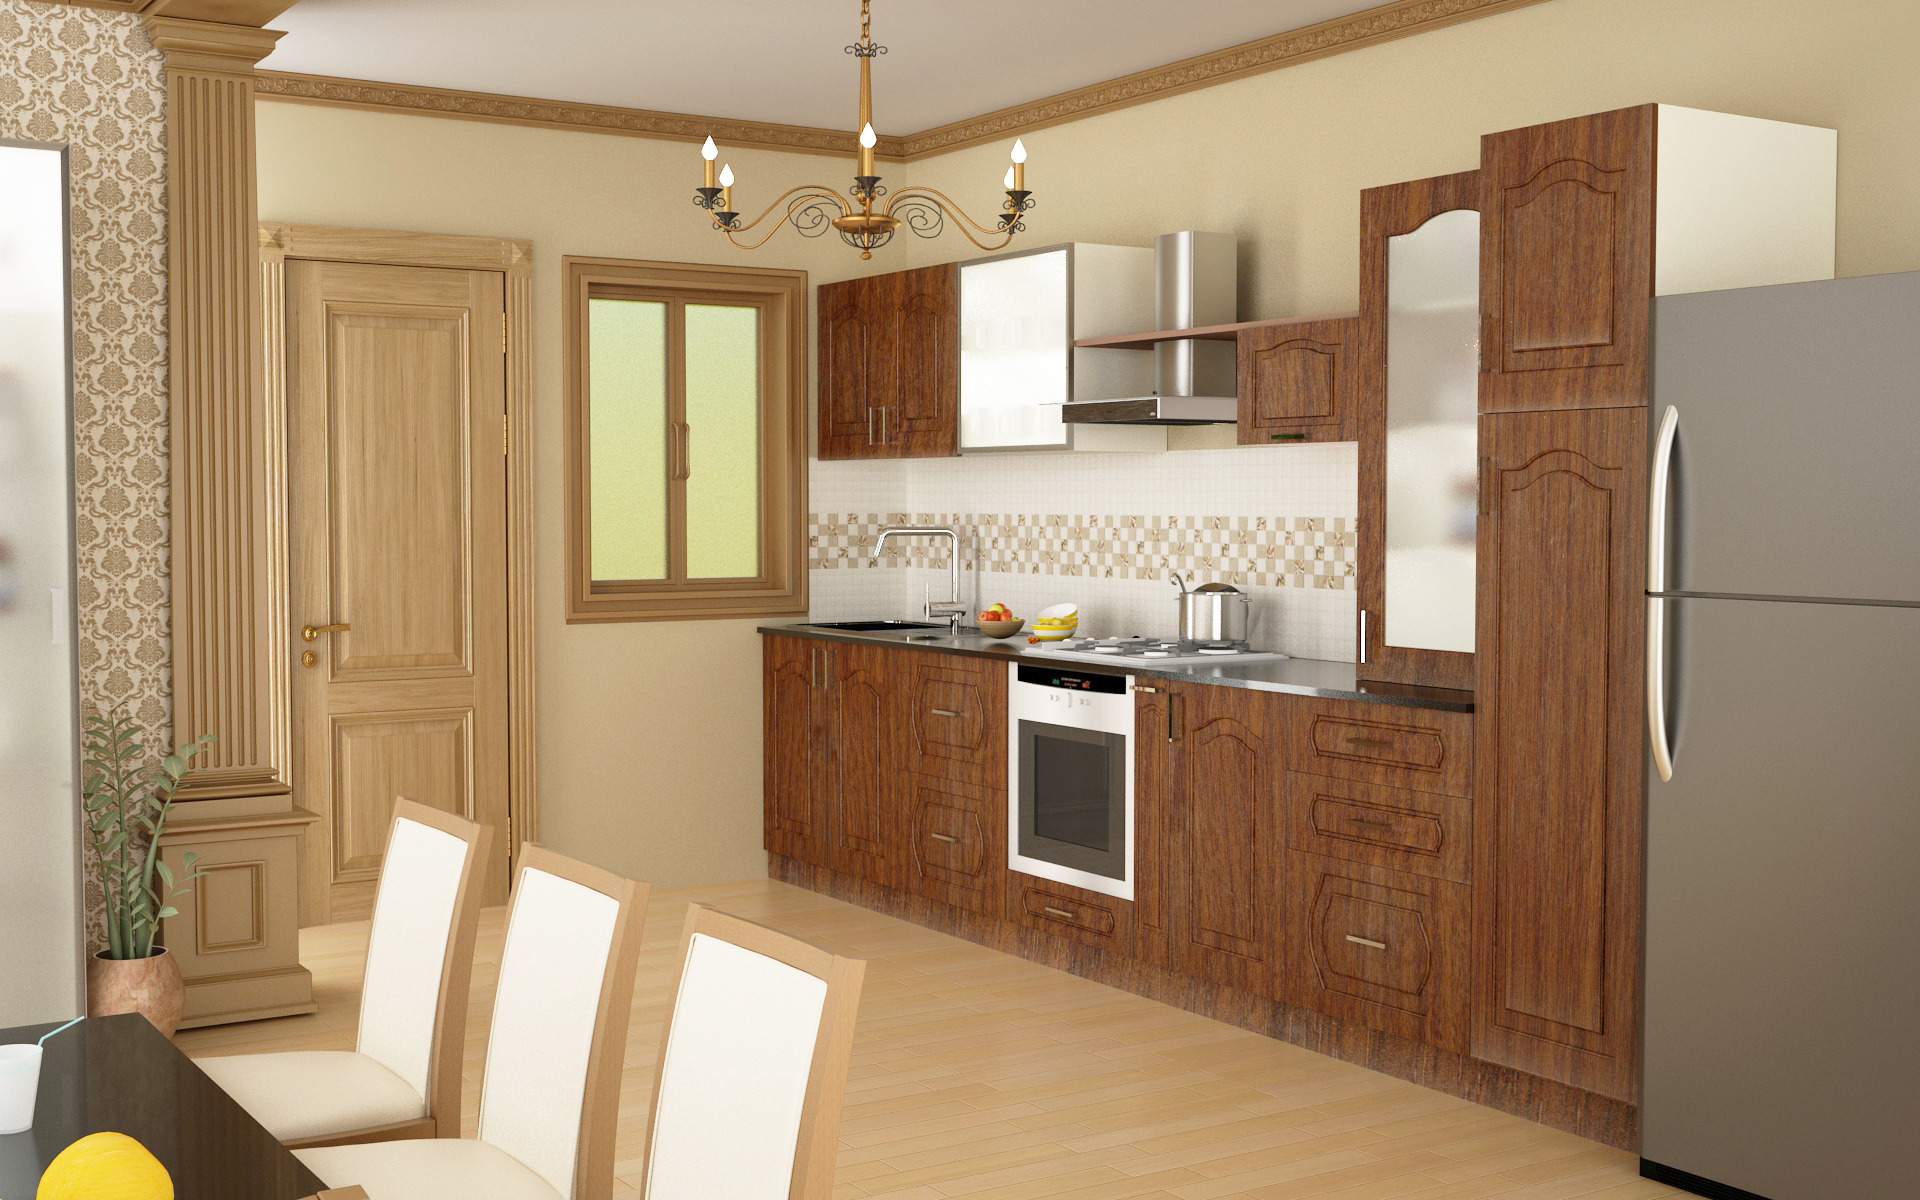 small interior kitchen manufacturer in Bangalore